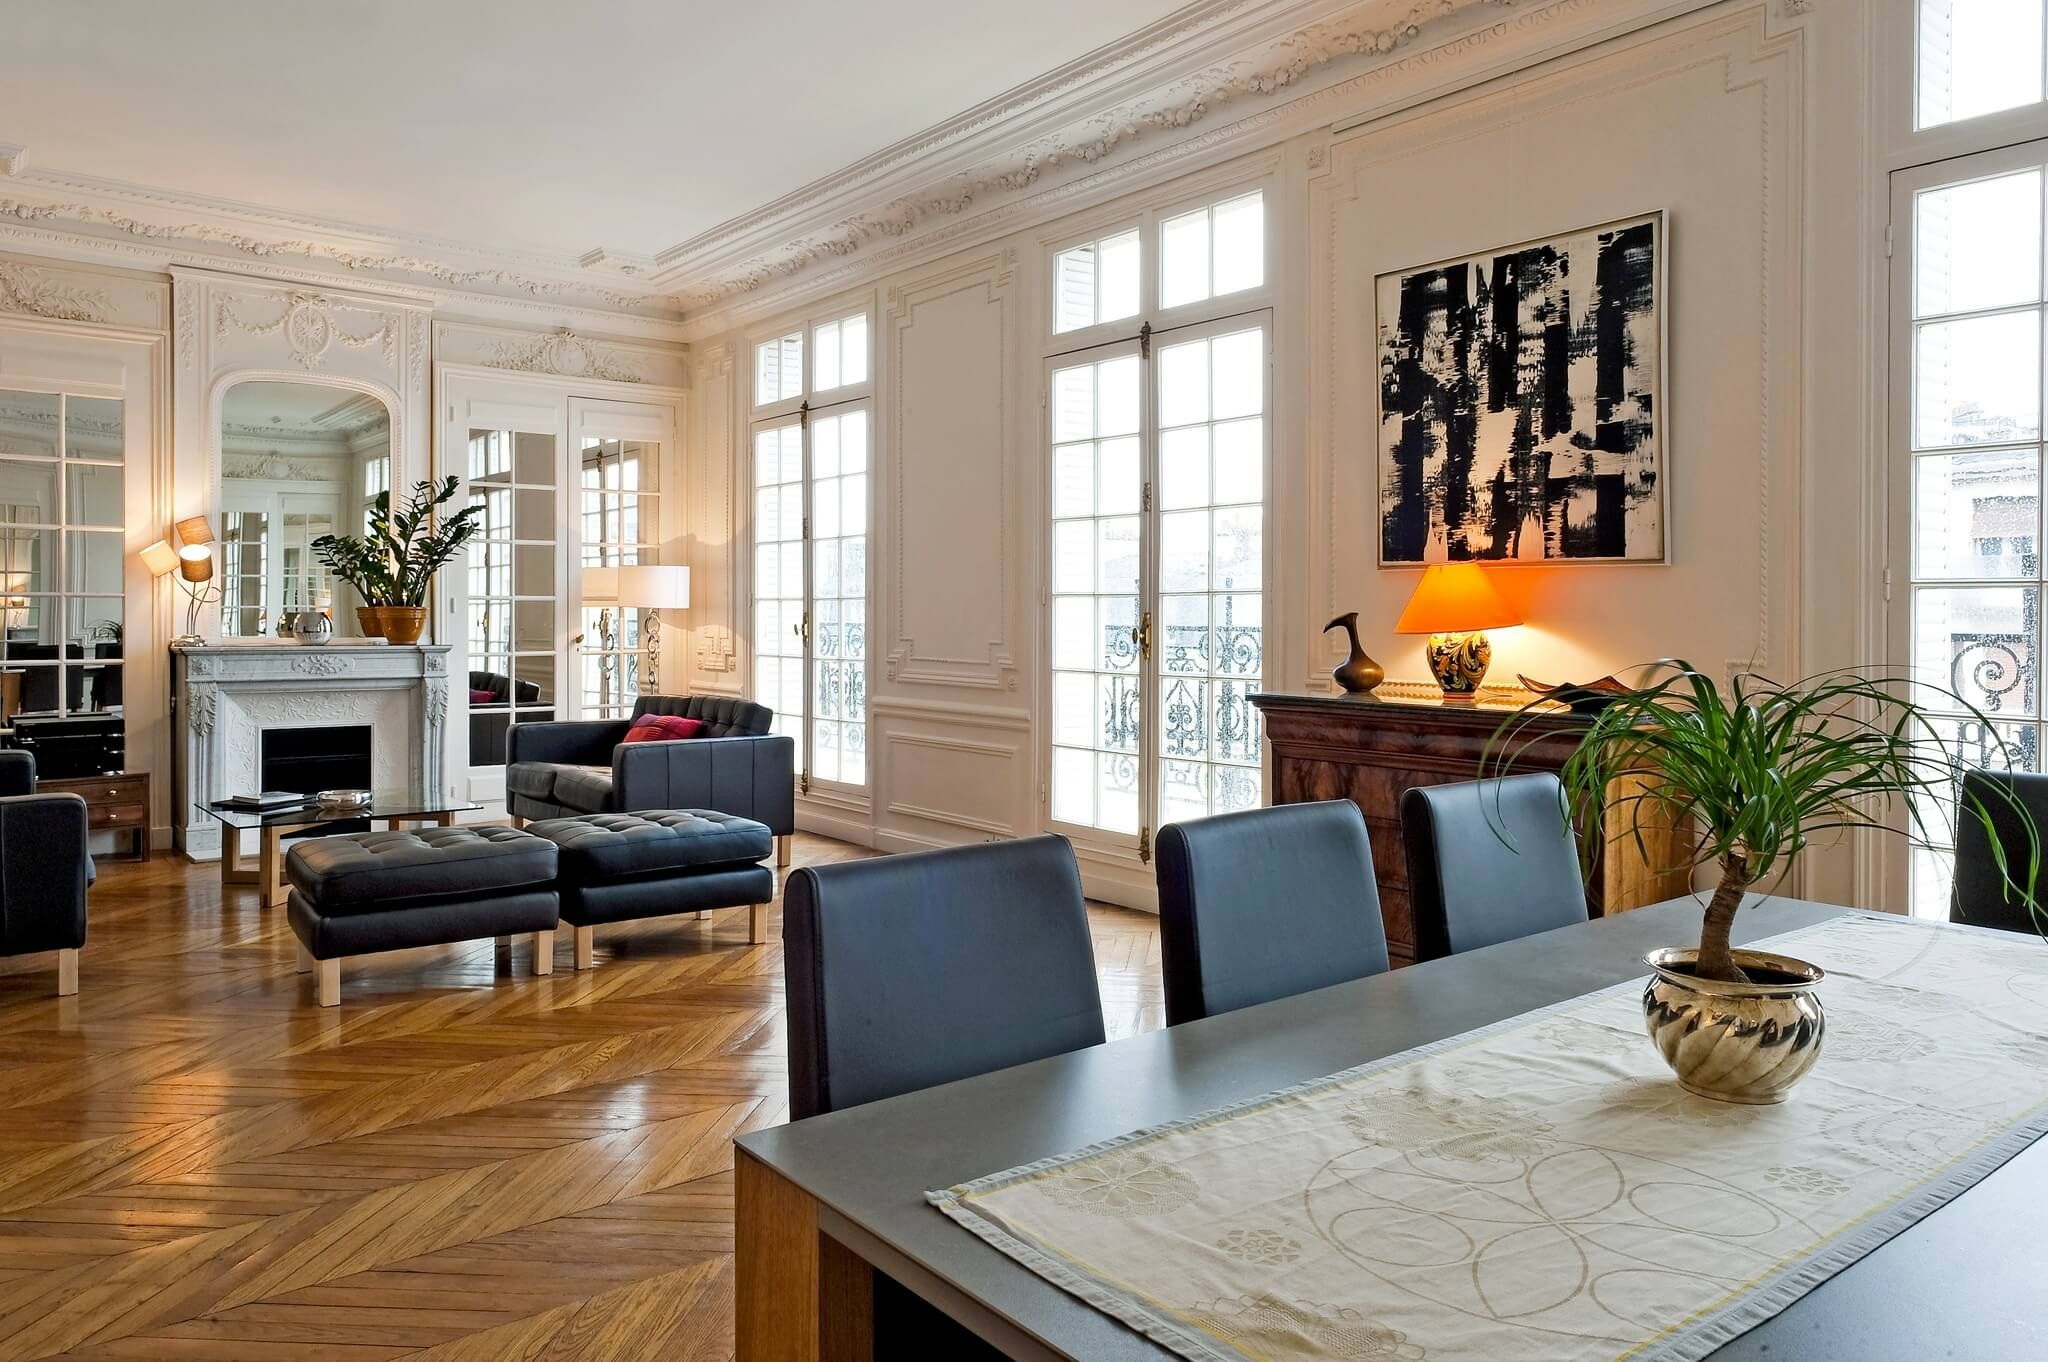 Paris Vacation Apartment Rental | République | Haven In